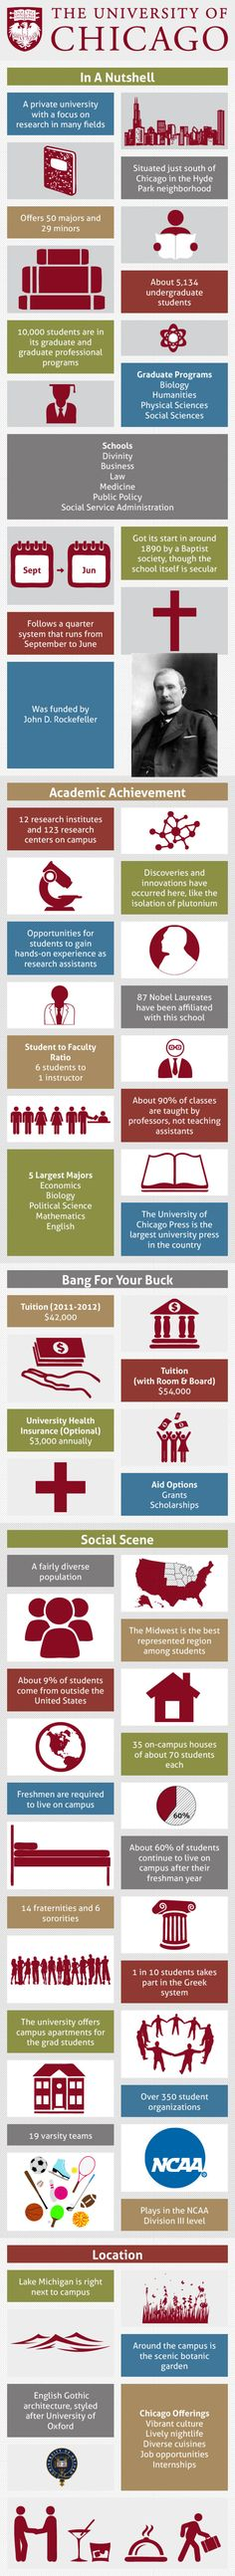 The University of Chicago Infographic. My dream school, hopefully I end up there one day!